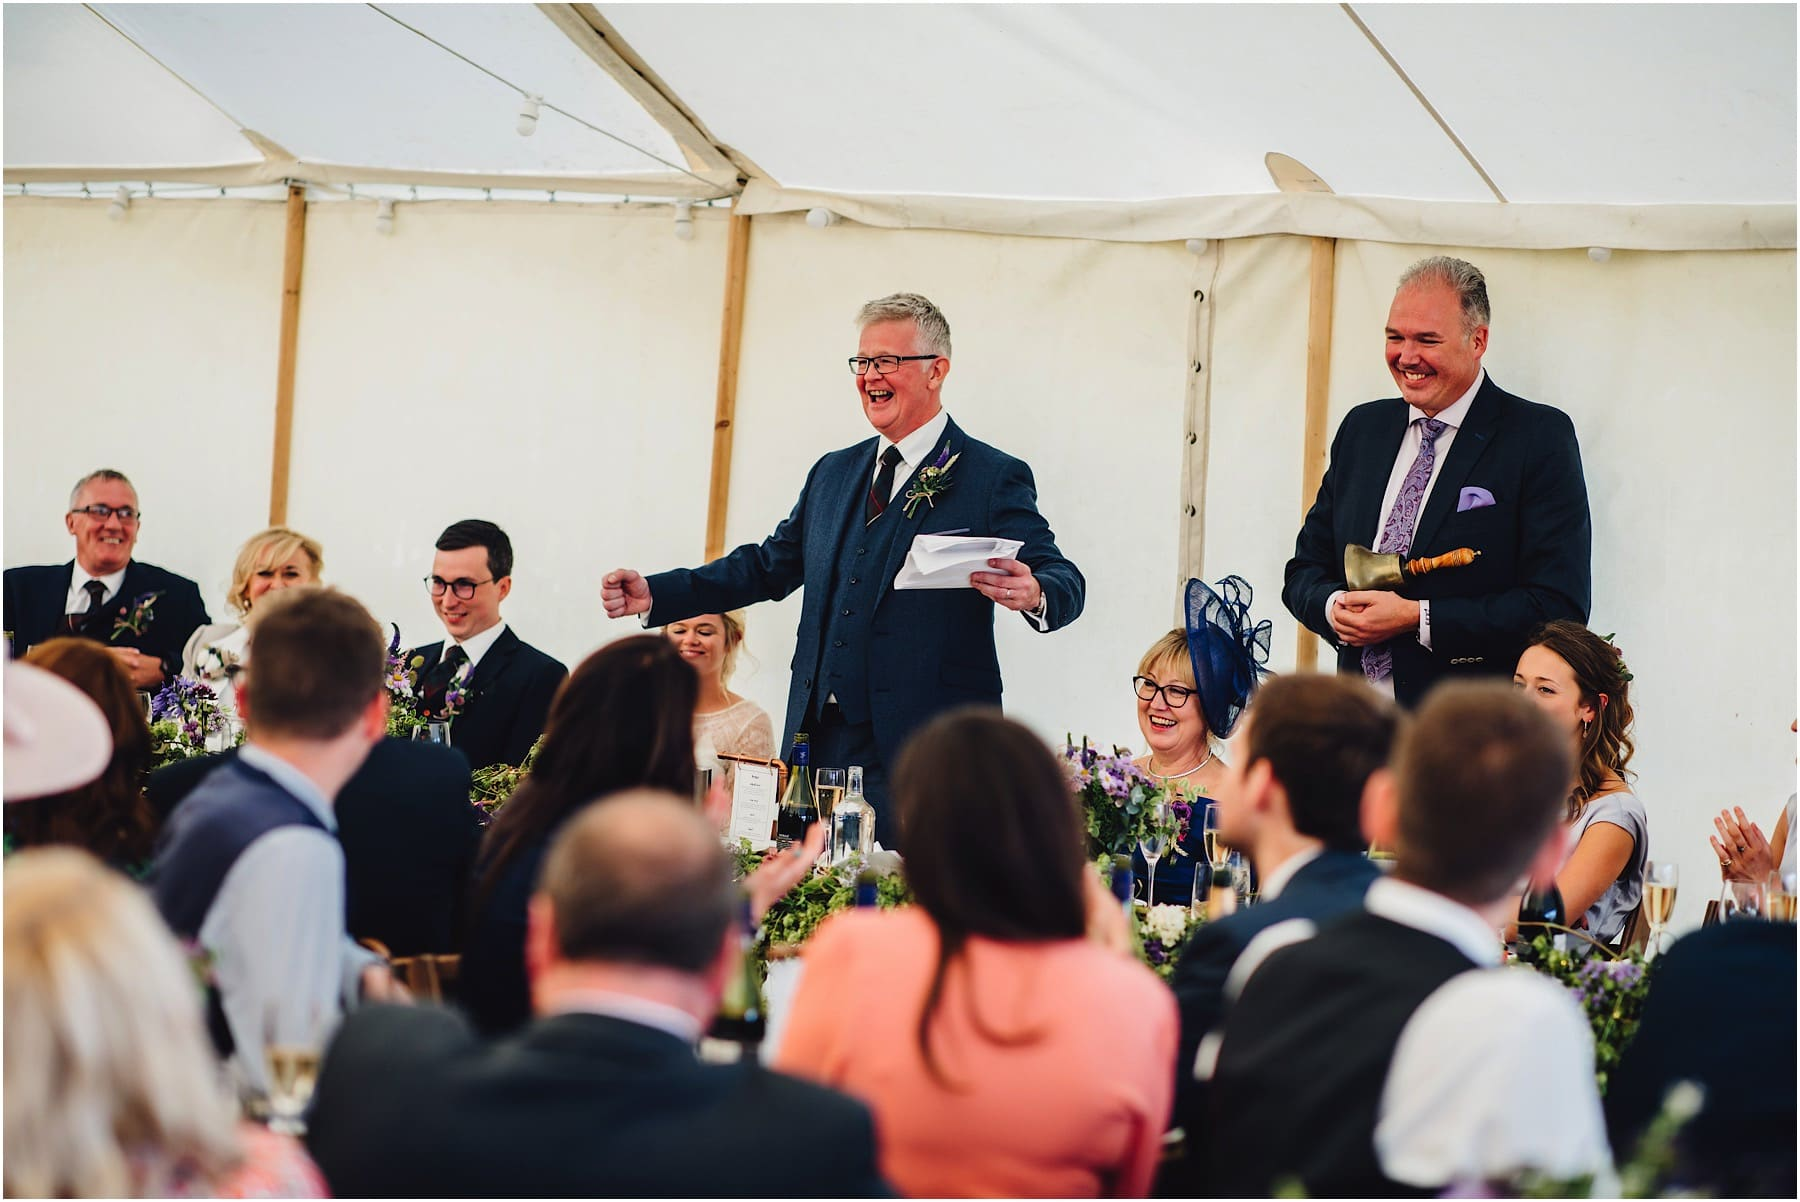 father of the bride delivering his wedding speech